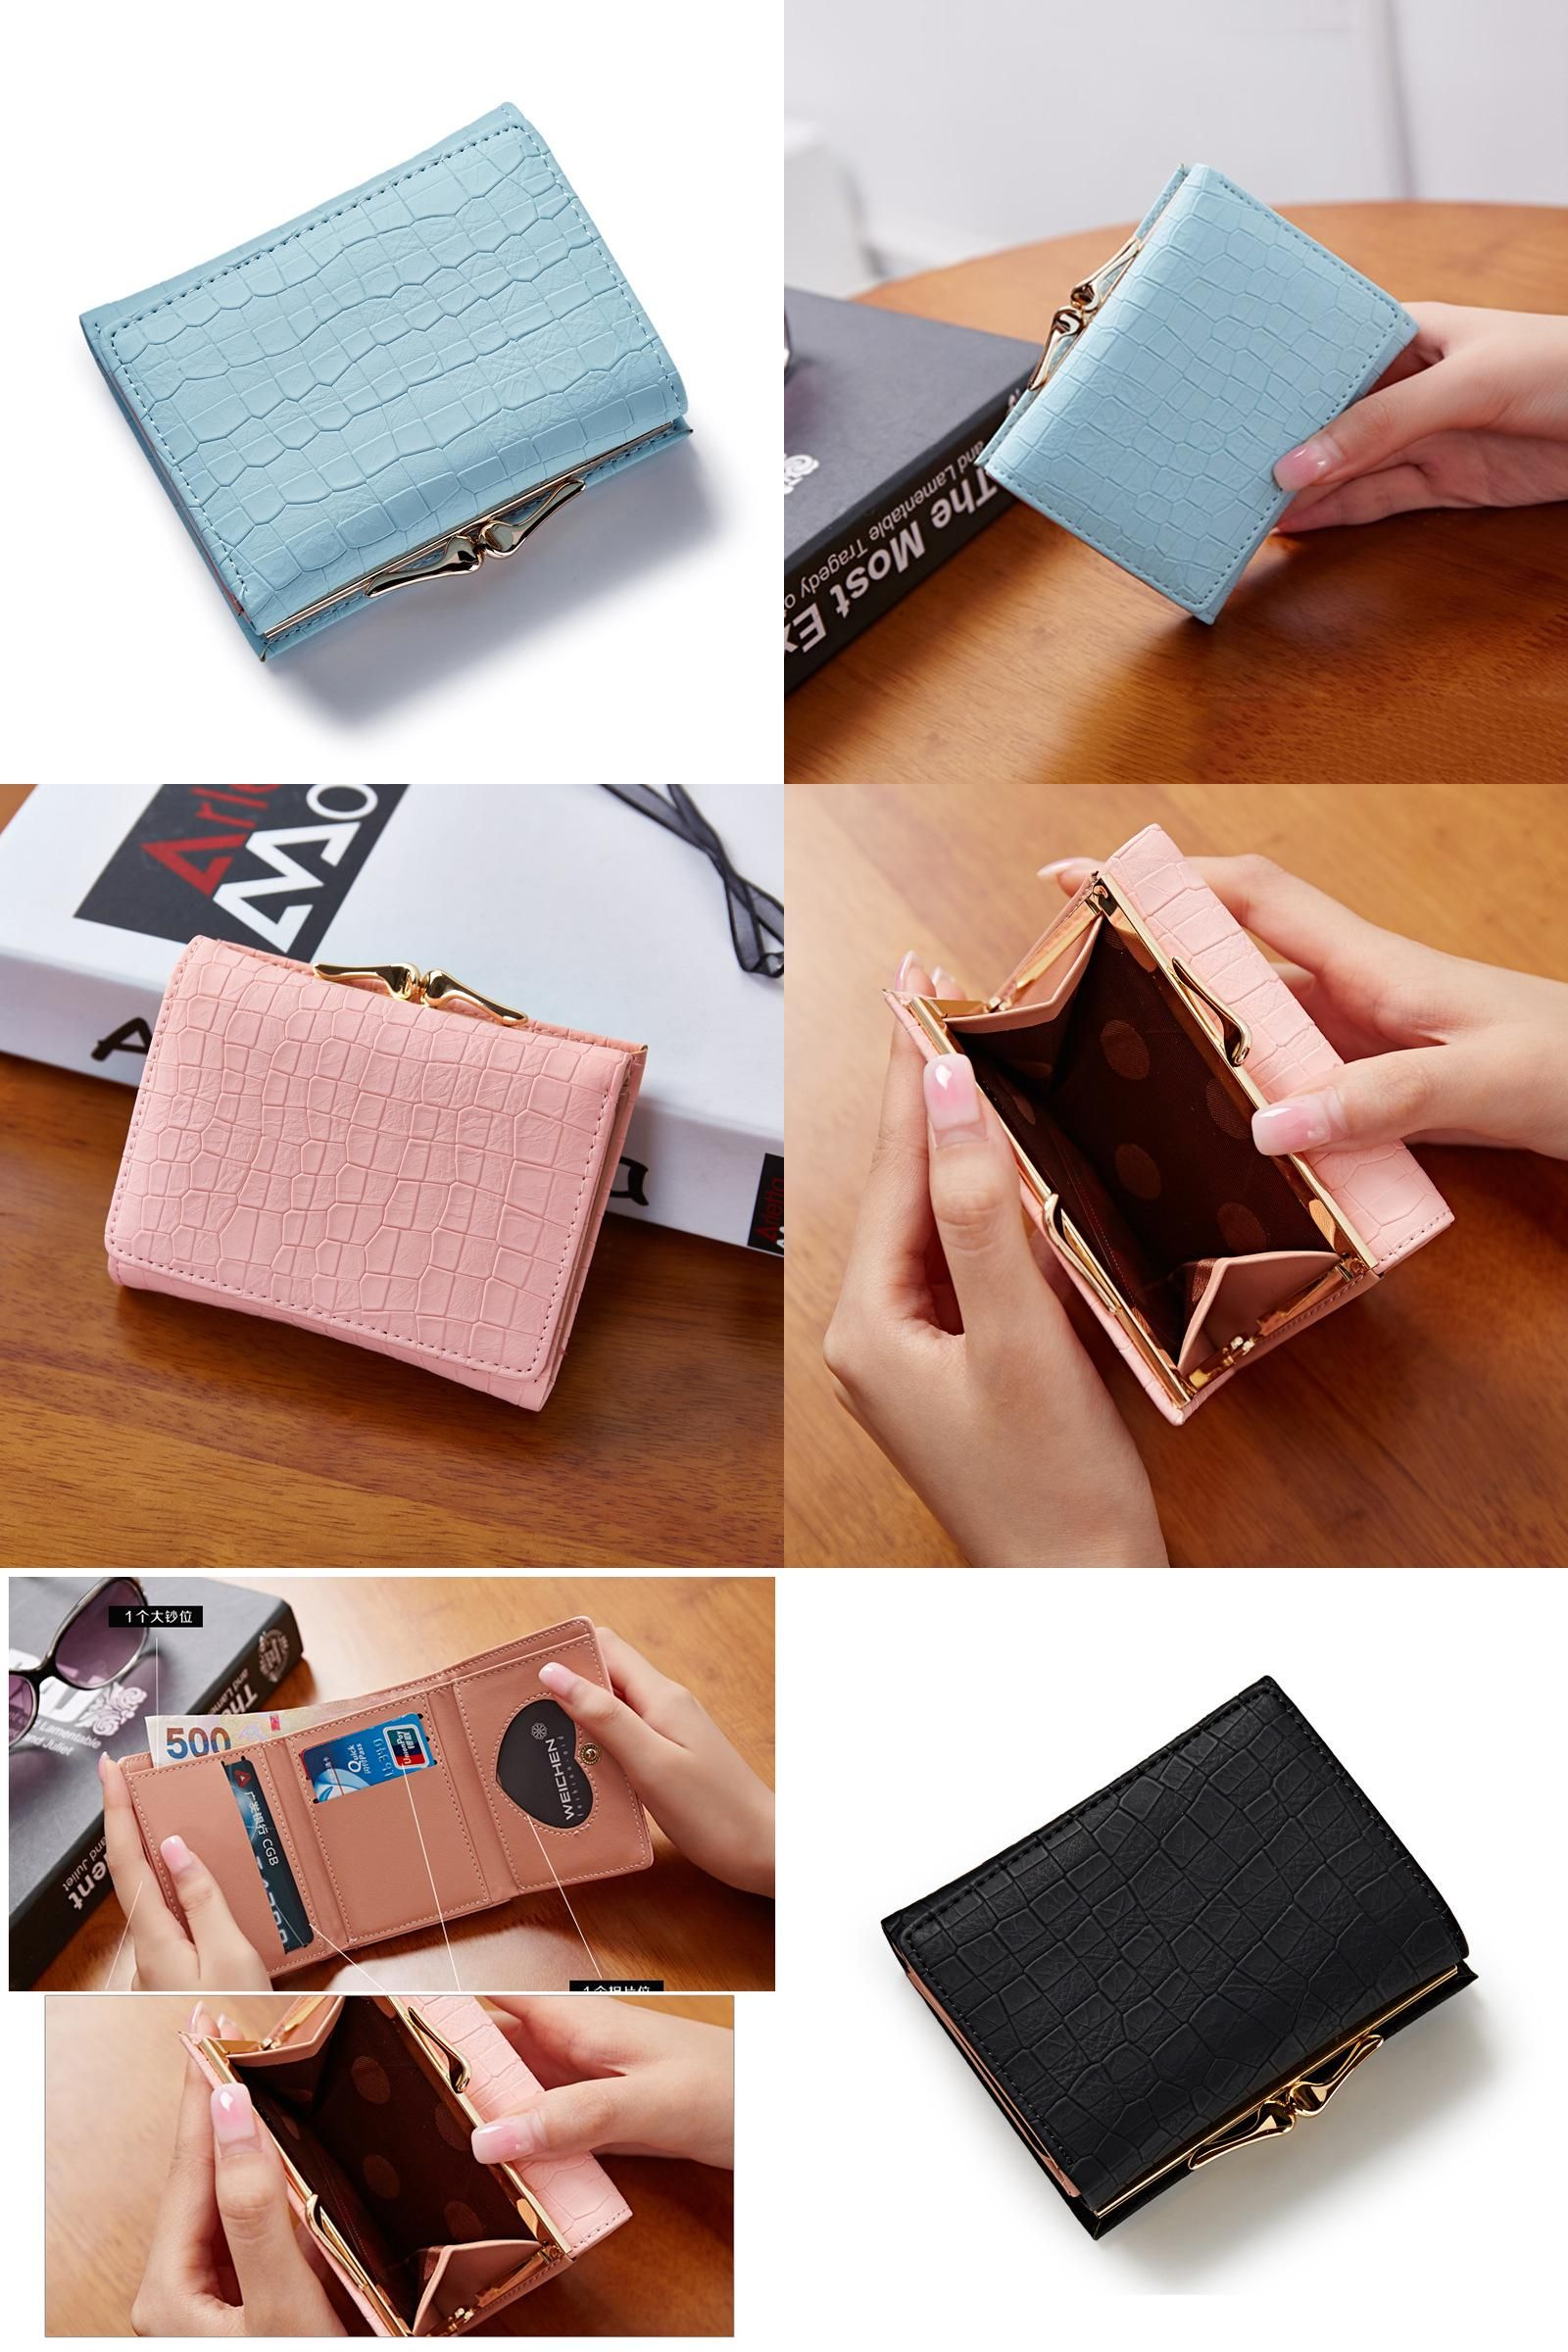 ead1140763b [Visit to Buy] 2017 Korean Style PU Leather Women Wallets Slim Mini Wallet  Women Small Clutch Female wallet Coin Purse Card Holder Coin Bag  #Advertisement